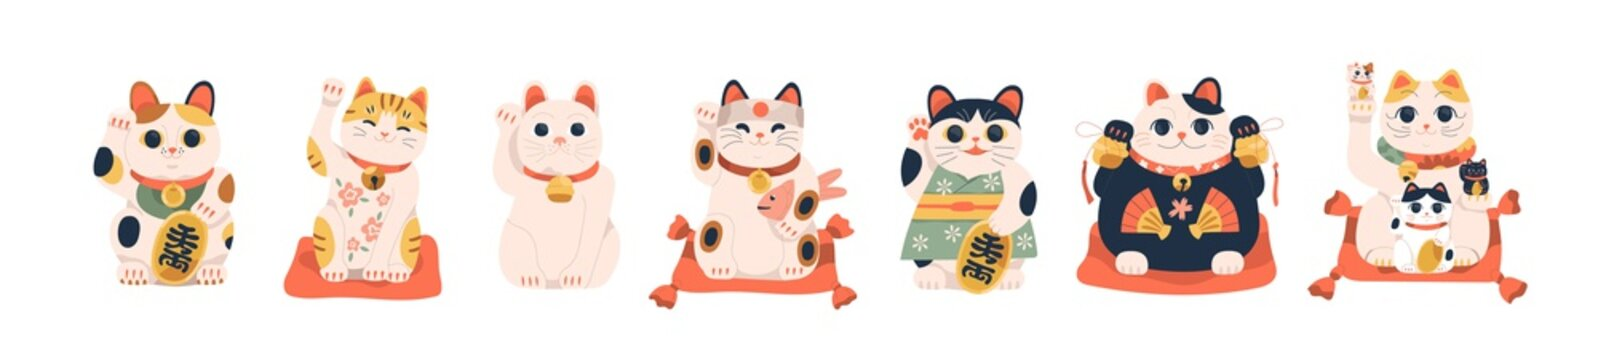 Set of different Japanese lucky cat maneki neko vector illustration. Collection of cute oriental feline figure with raised paw for attracting money and luck isolated. Traditional Asian toy symbol